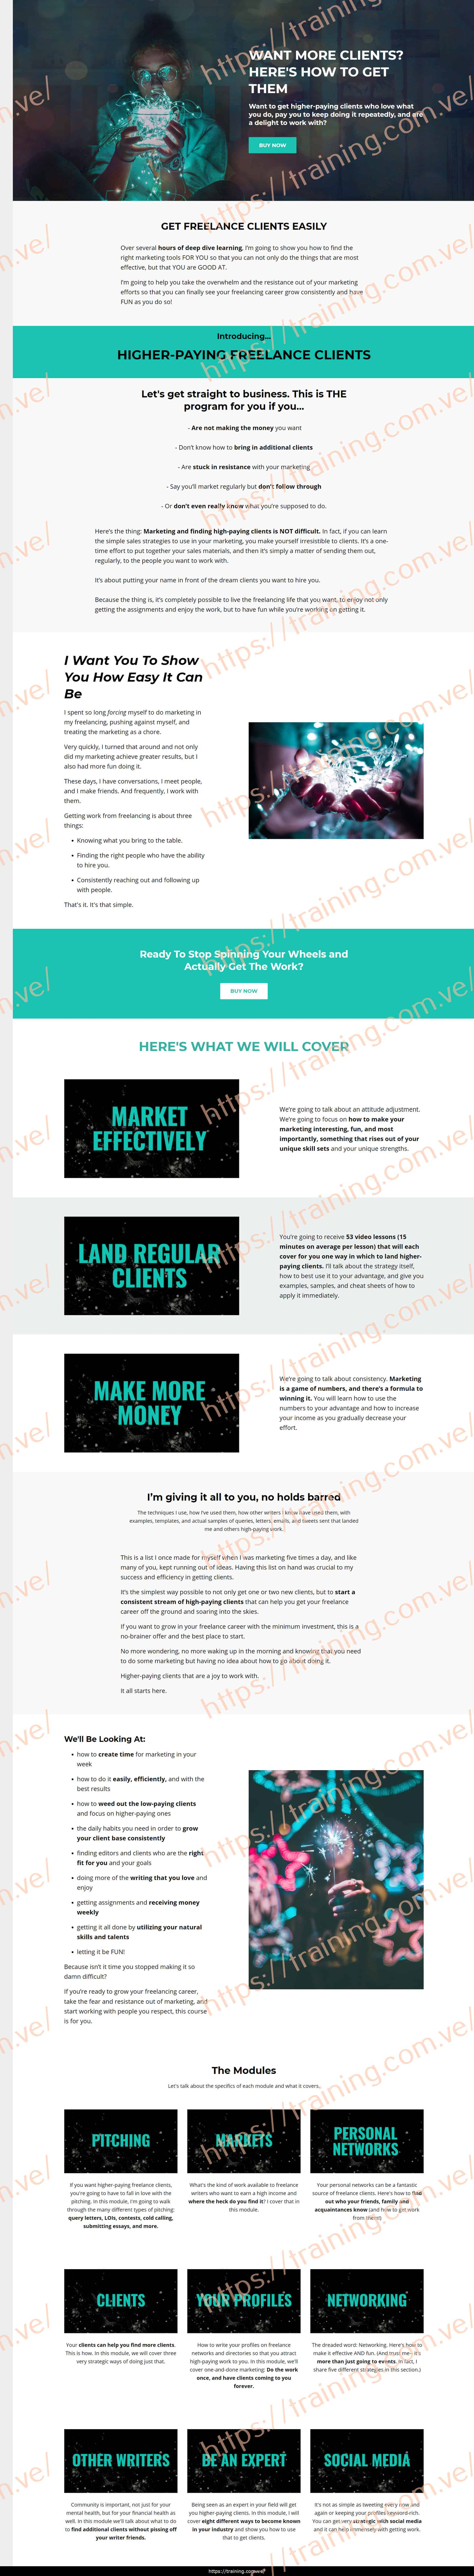 Higher-Paying Freelance Clients by Mridu Khullar Relph Sales Page